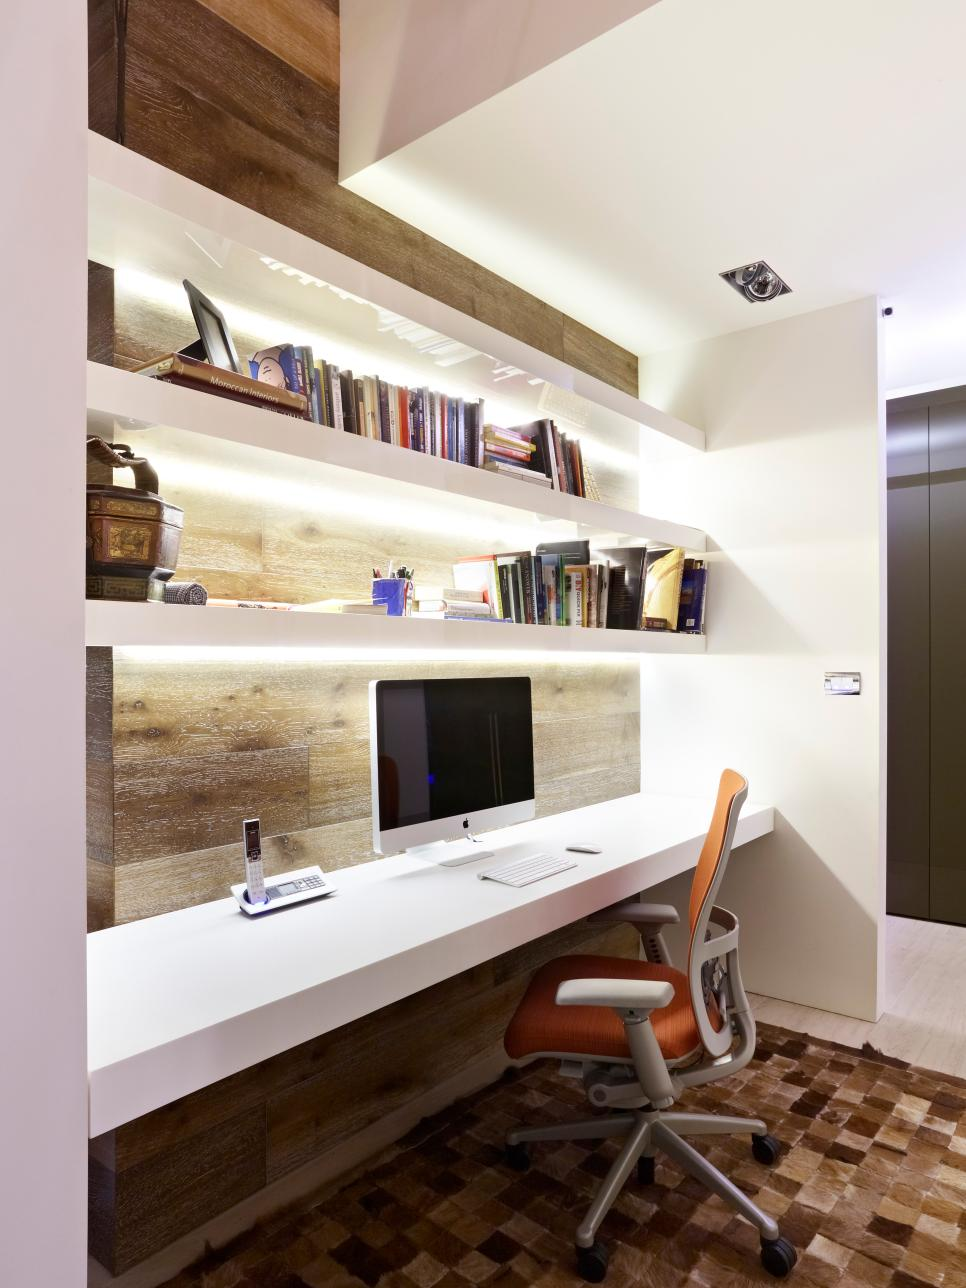 Amusing White Wooden Desk And Shelves Ideas As The Ideas Of The Home Design